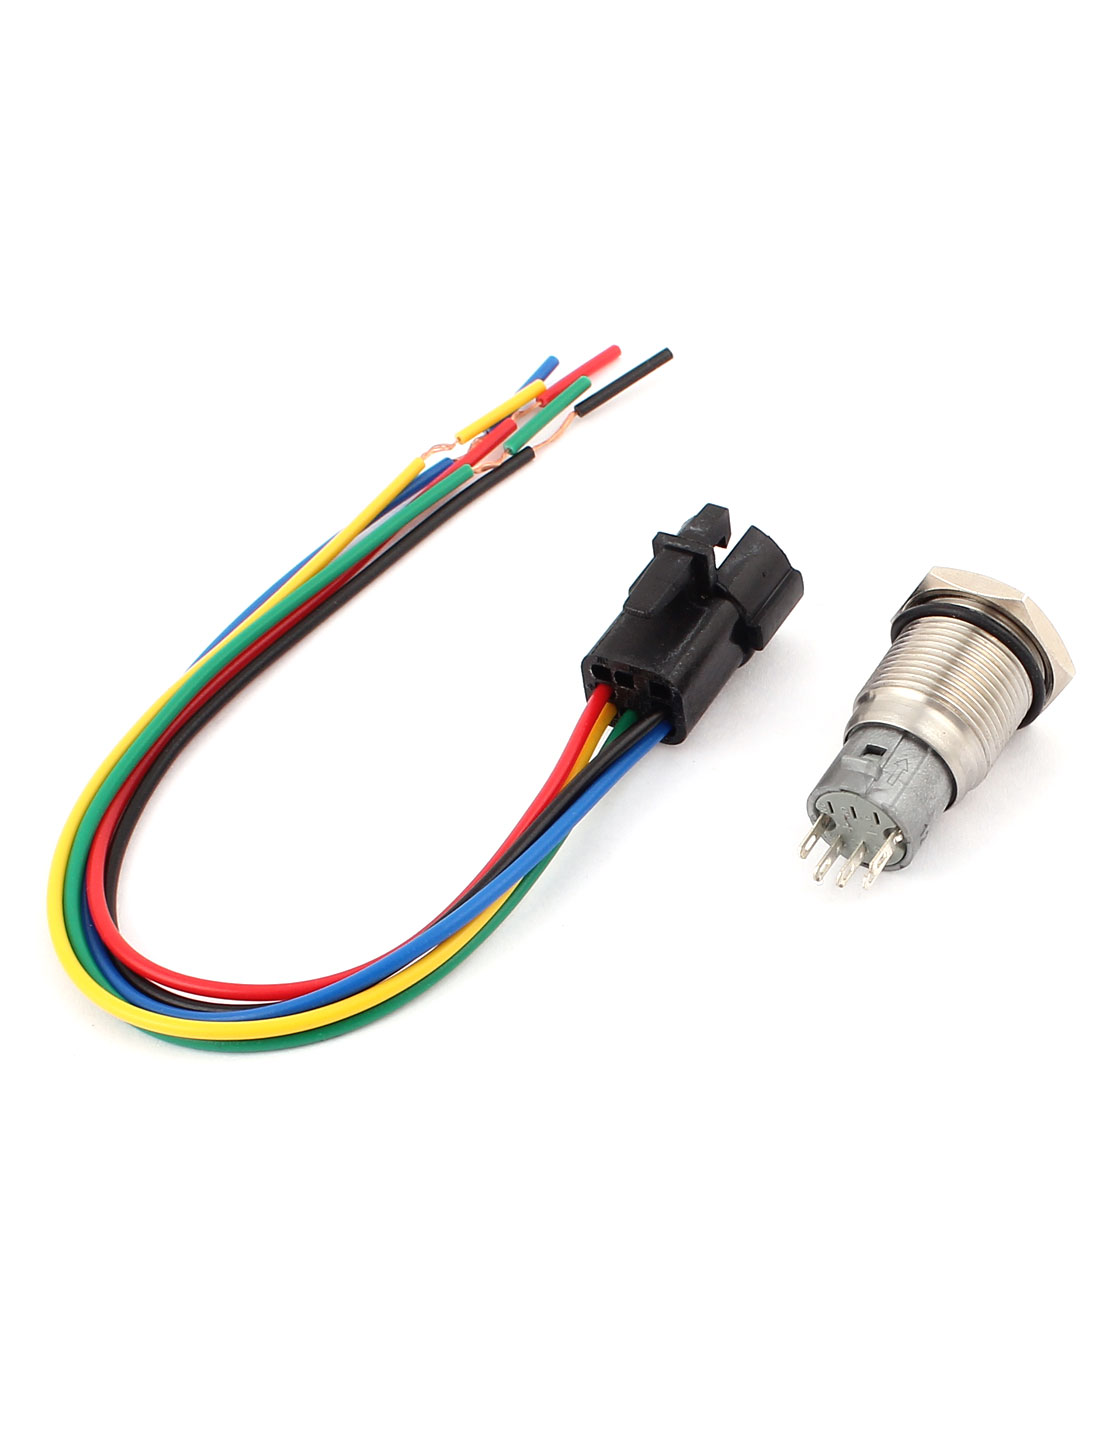 hight resolution of dc 12v green angle eye spdt latching car push button switch 16mm w wire walmart canada